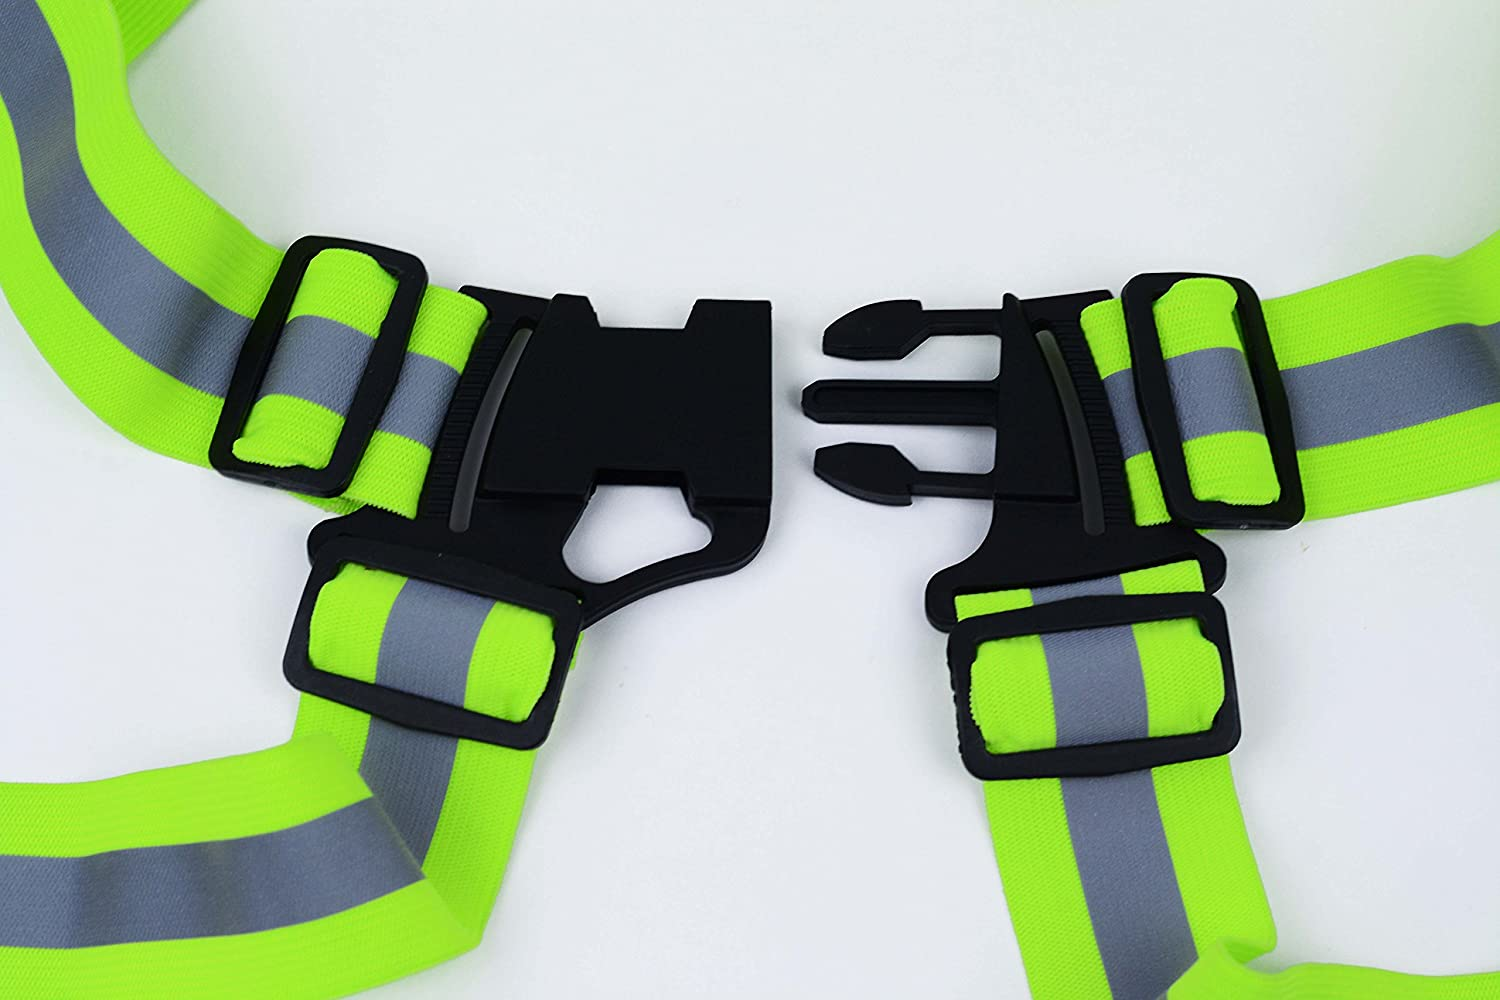 ,Reflective Running Vest Cycling DREAM BEAR360/°High Visibility Elastic Reflective Vest 2-pack and Hight Recommendation Put in Your Car for Safe Disposal of Accident Dream Bear Trading Co Ltd LYSB018QM2ZTC-SPRTSEQIP Motorcycle